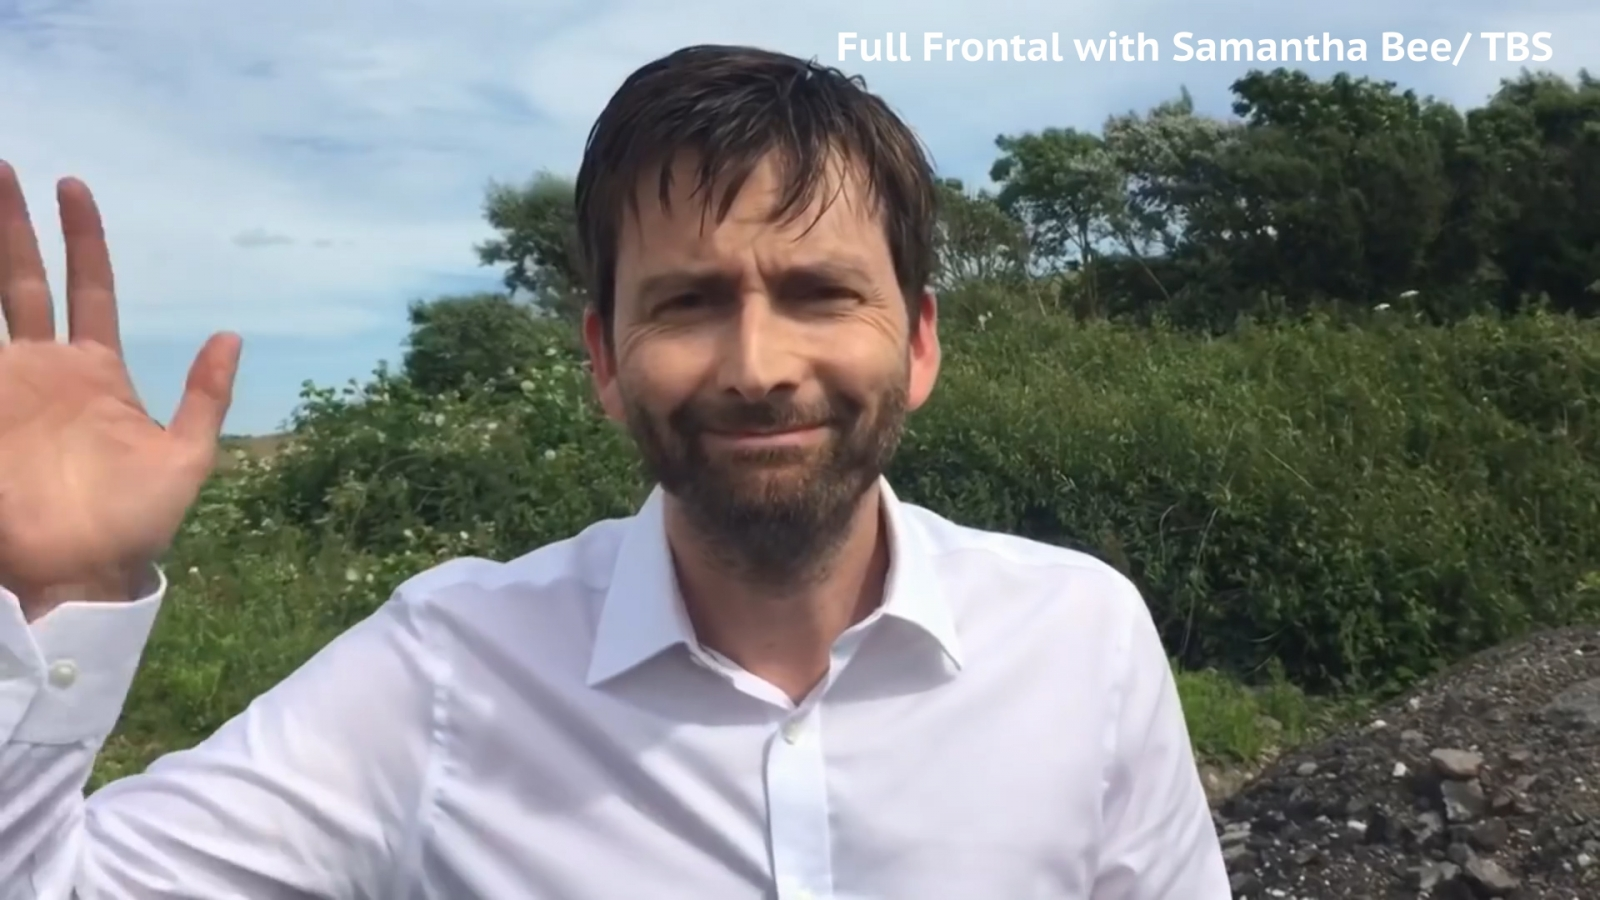 David Tennant reads out Scottish insults about Trump on Twitter